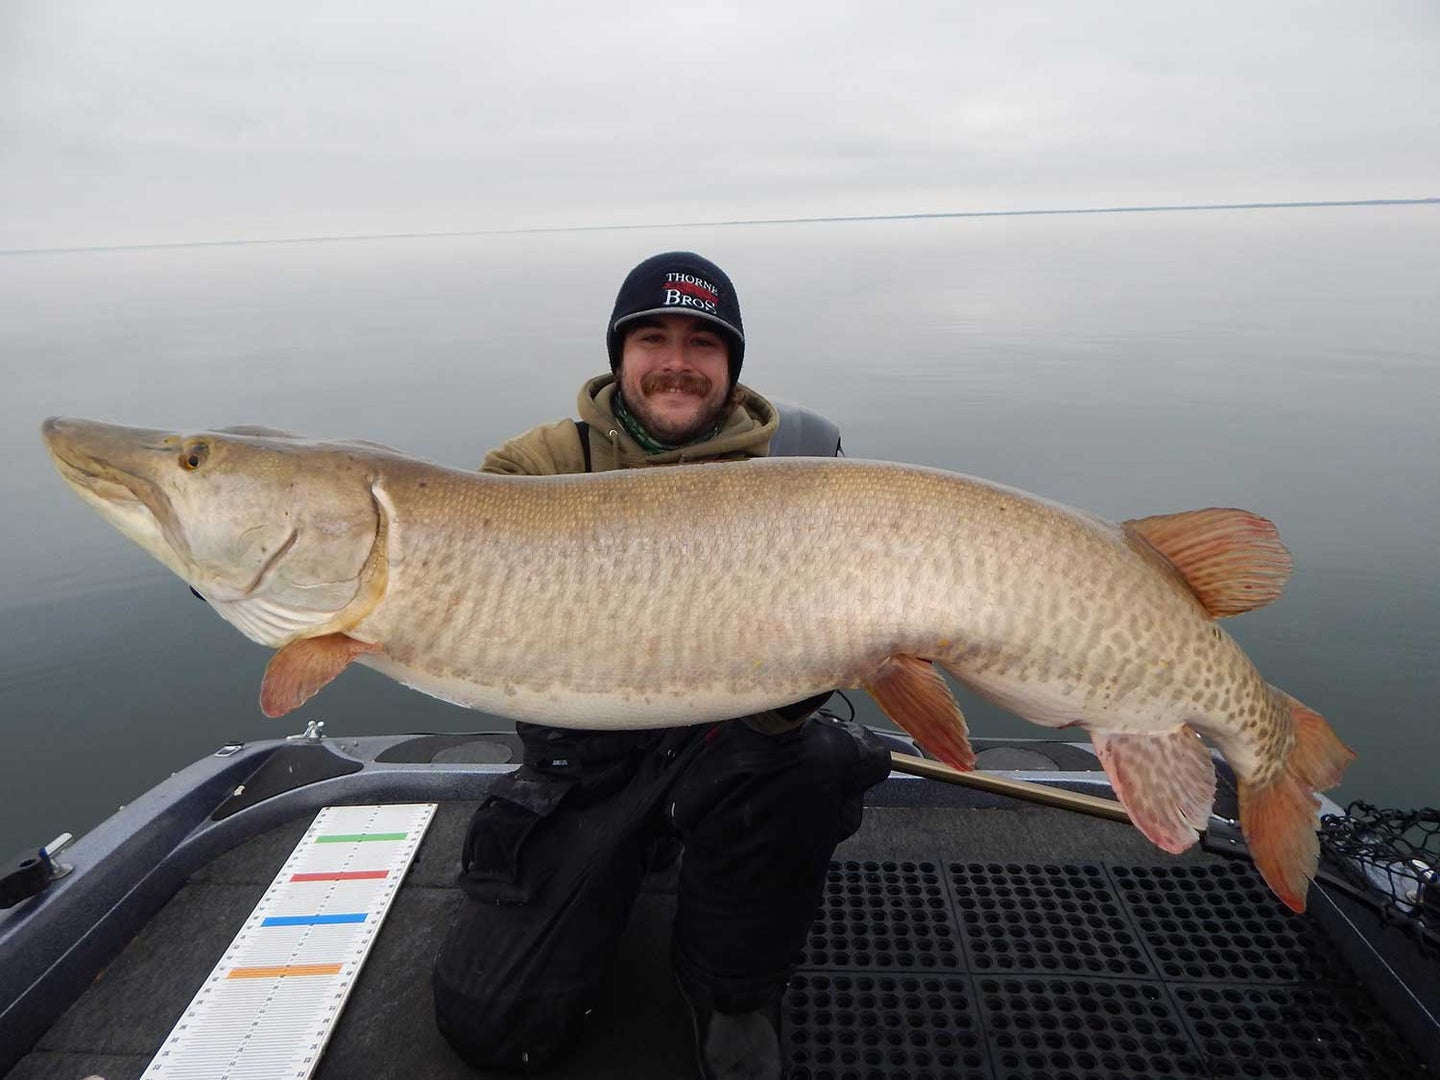 An angler holds up a large muskie fish.